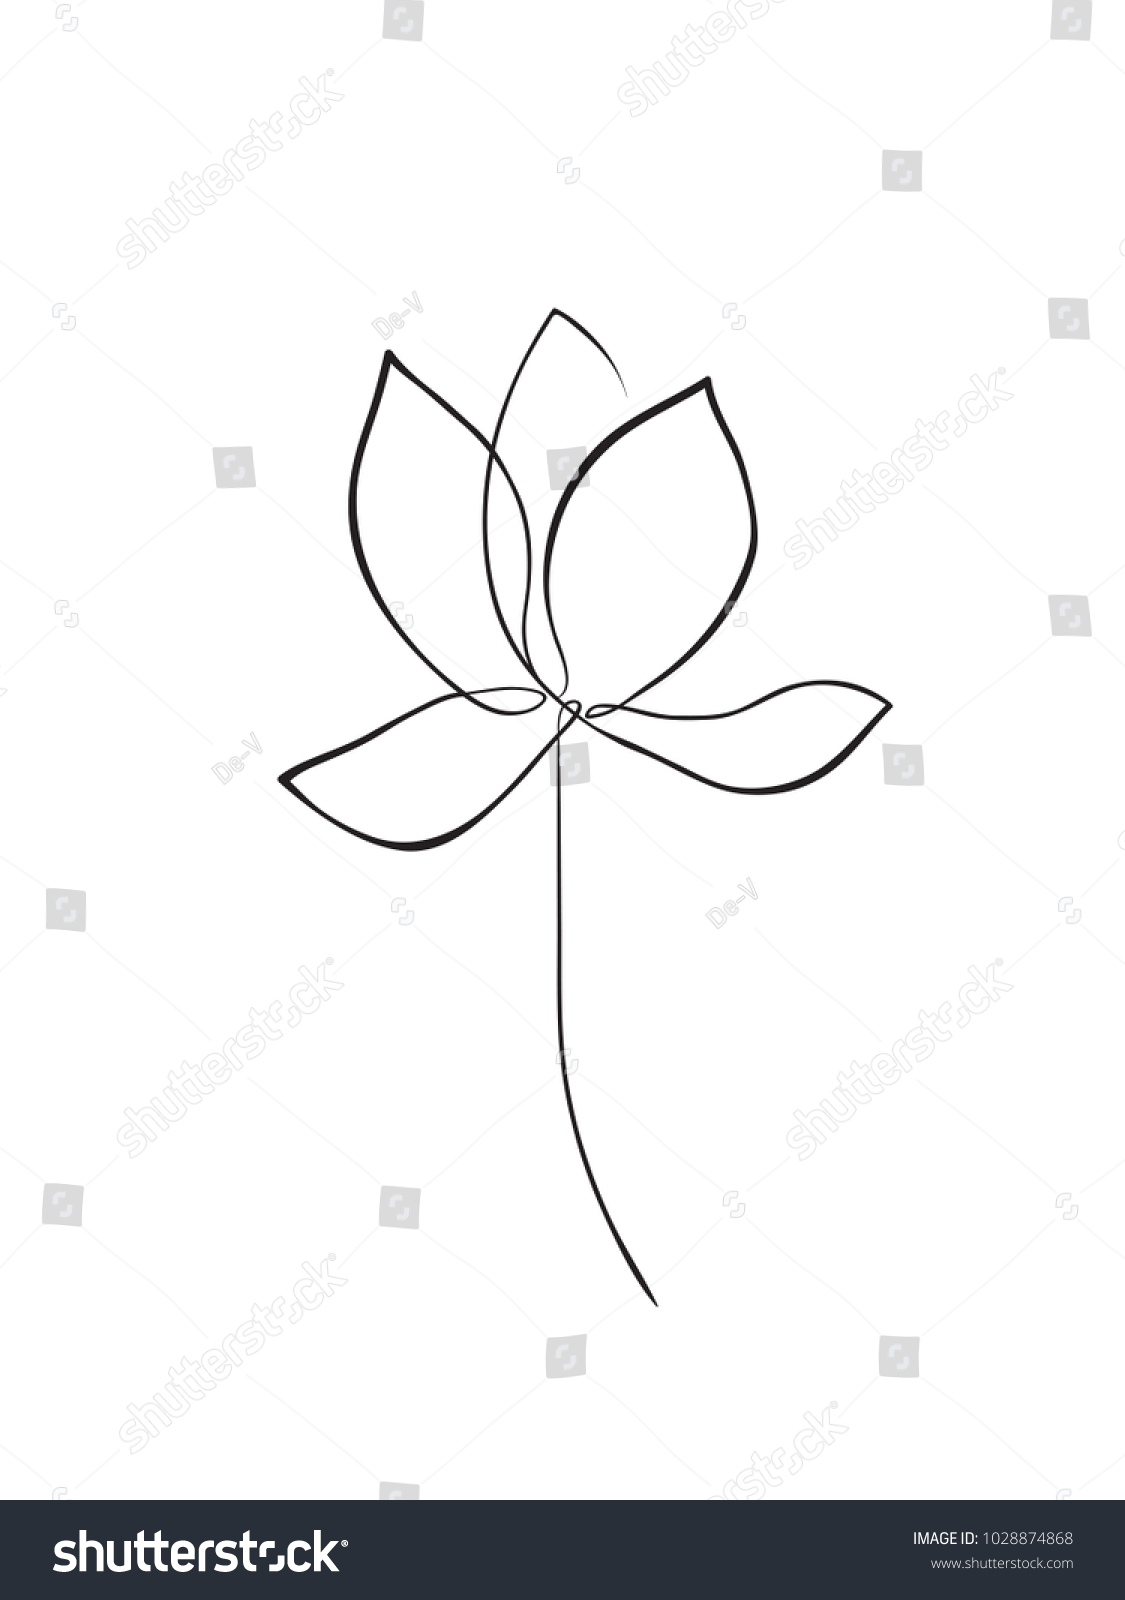 Lotus Flower Line Art Minimalist Contour Stock Vector Royalty Free